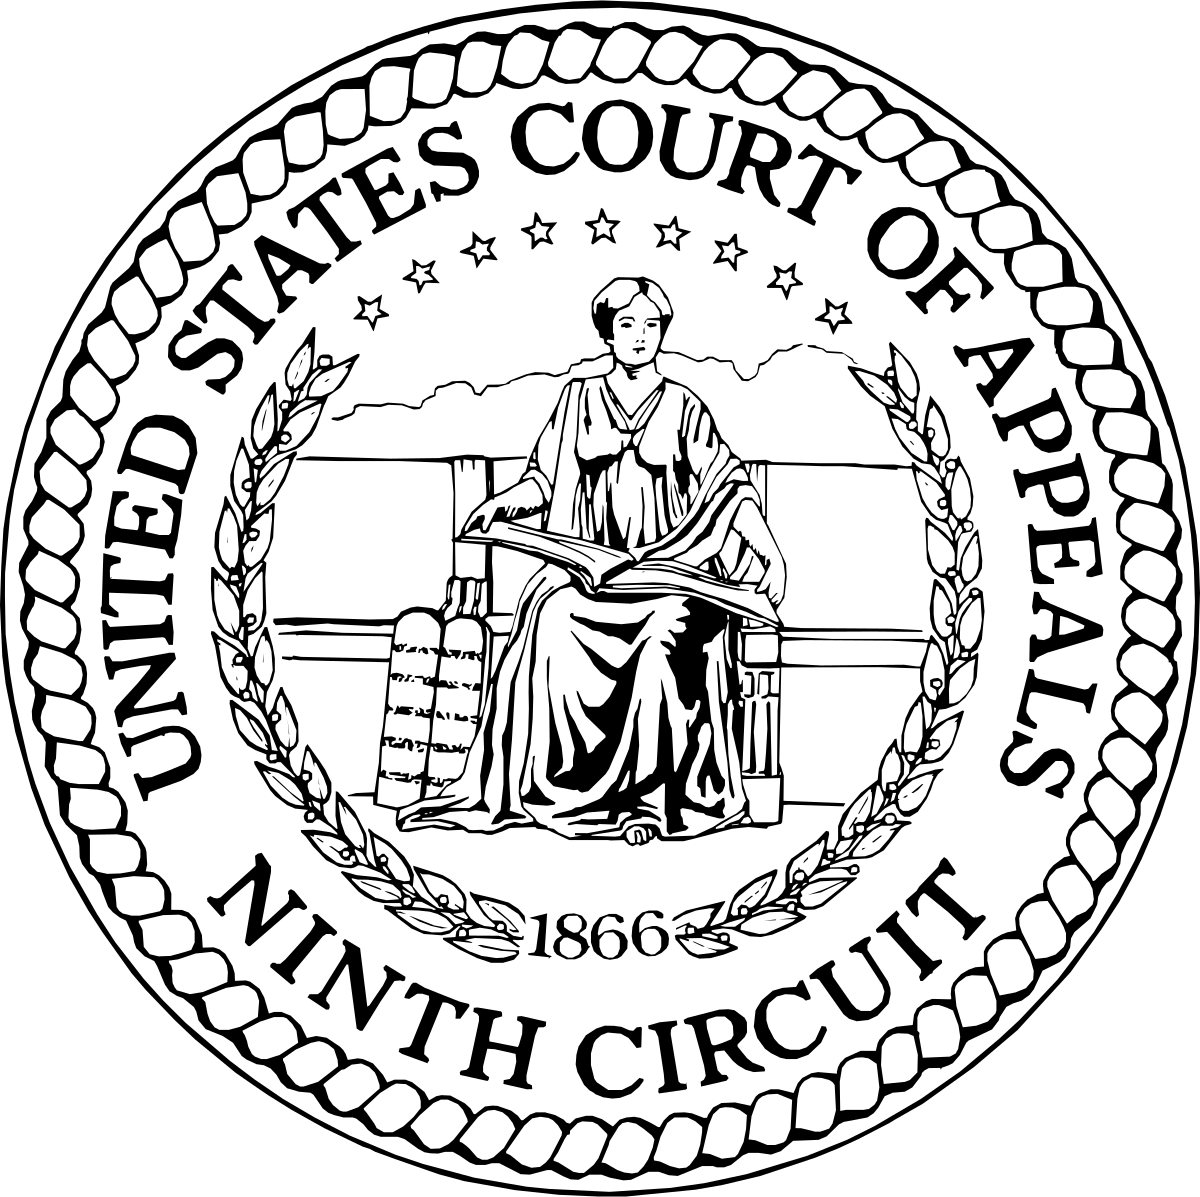 Court of Appeals Ninth Circuit